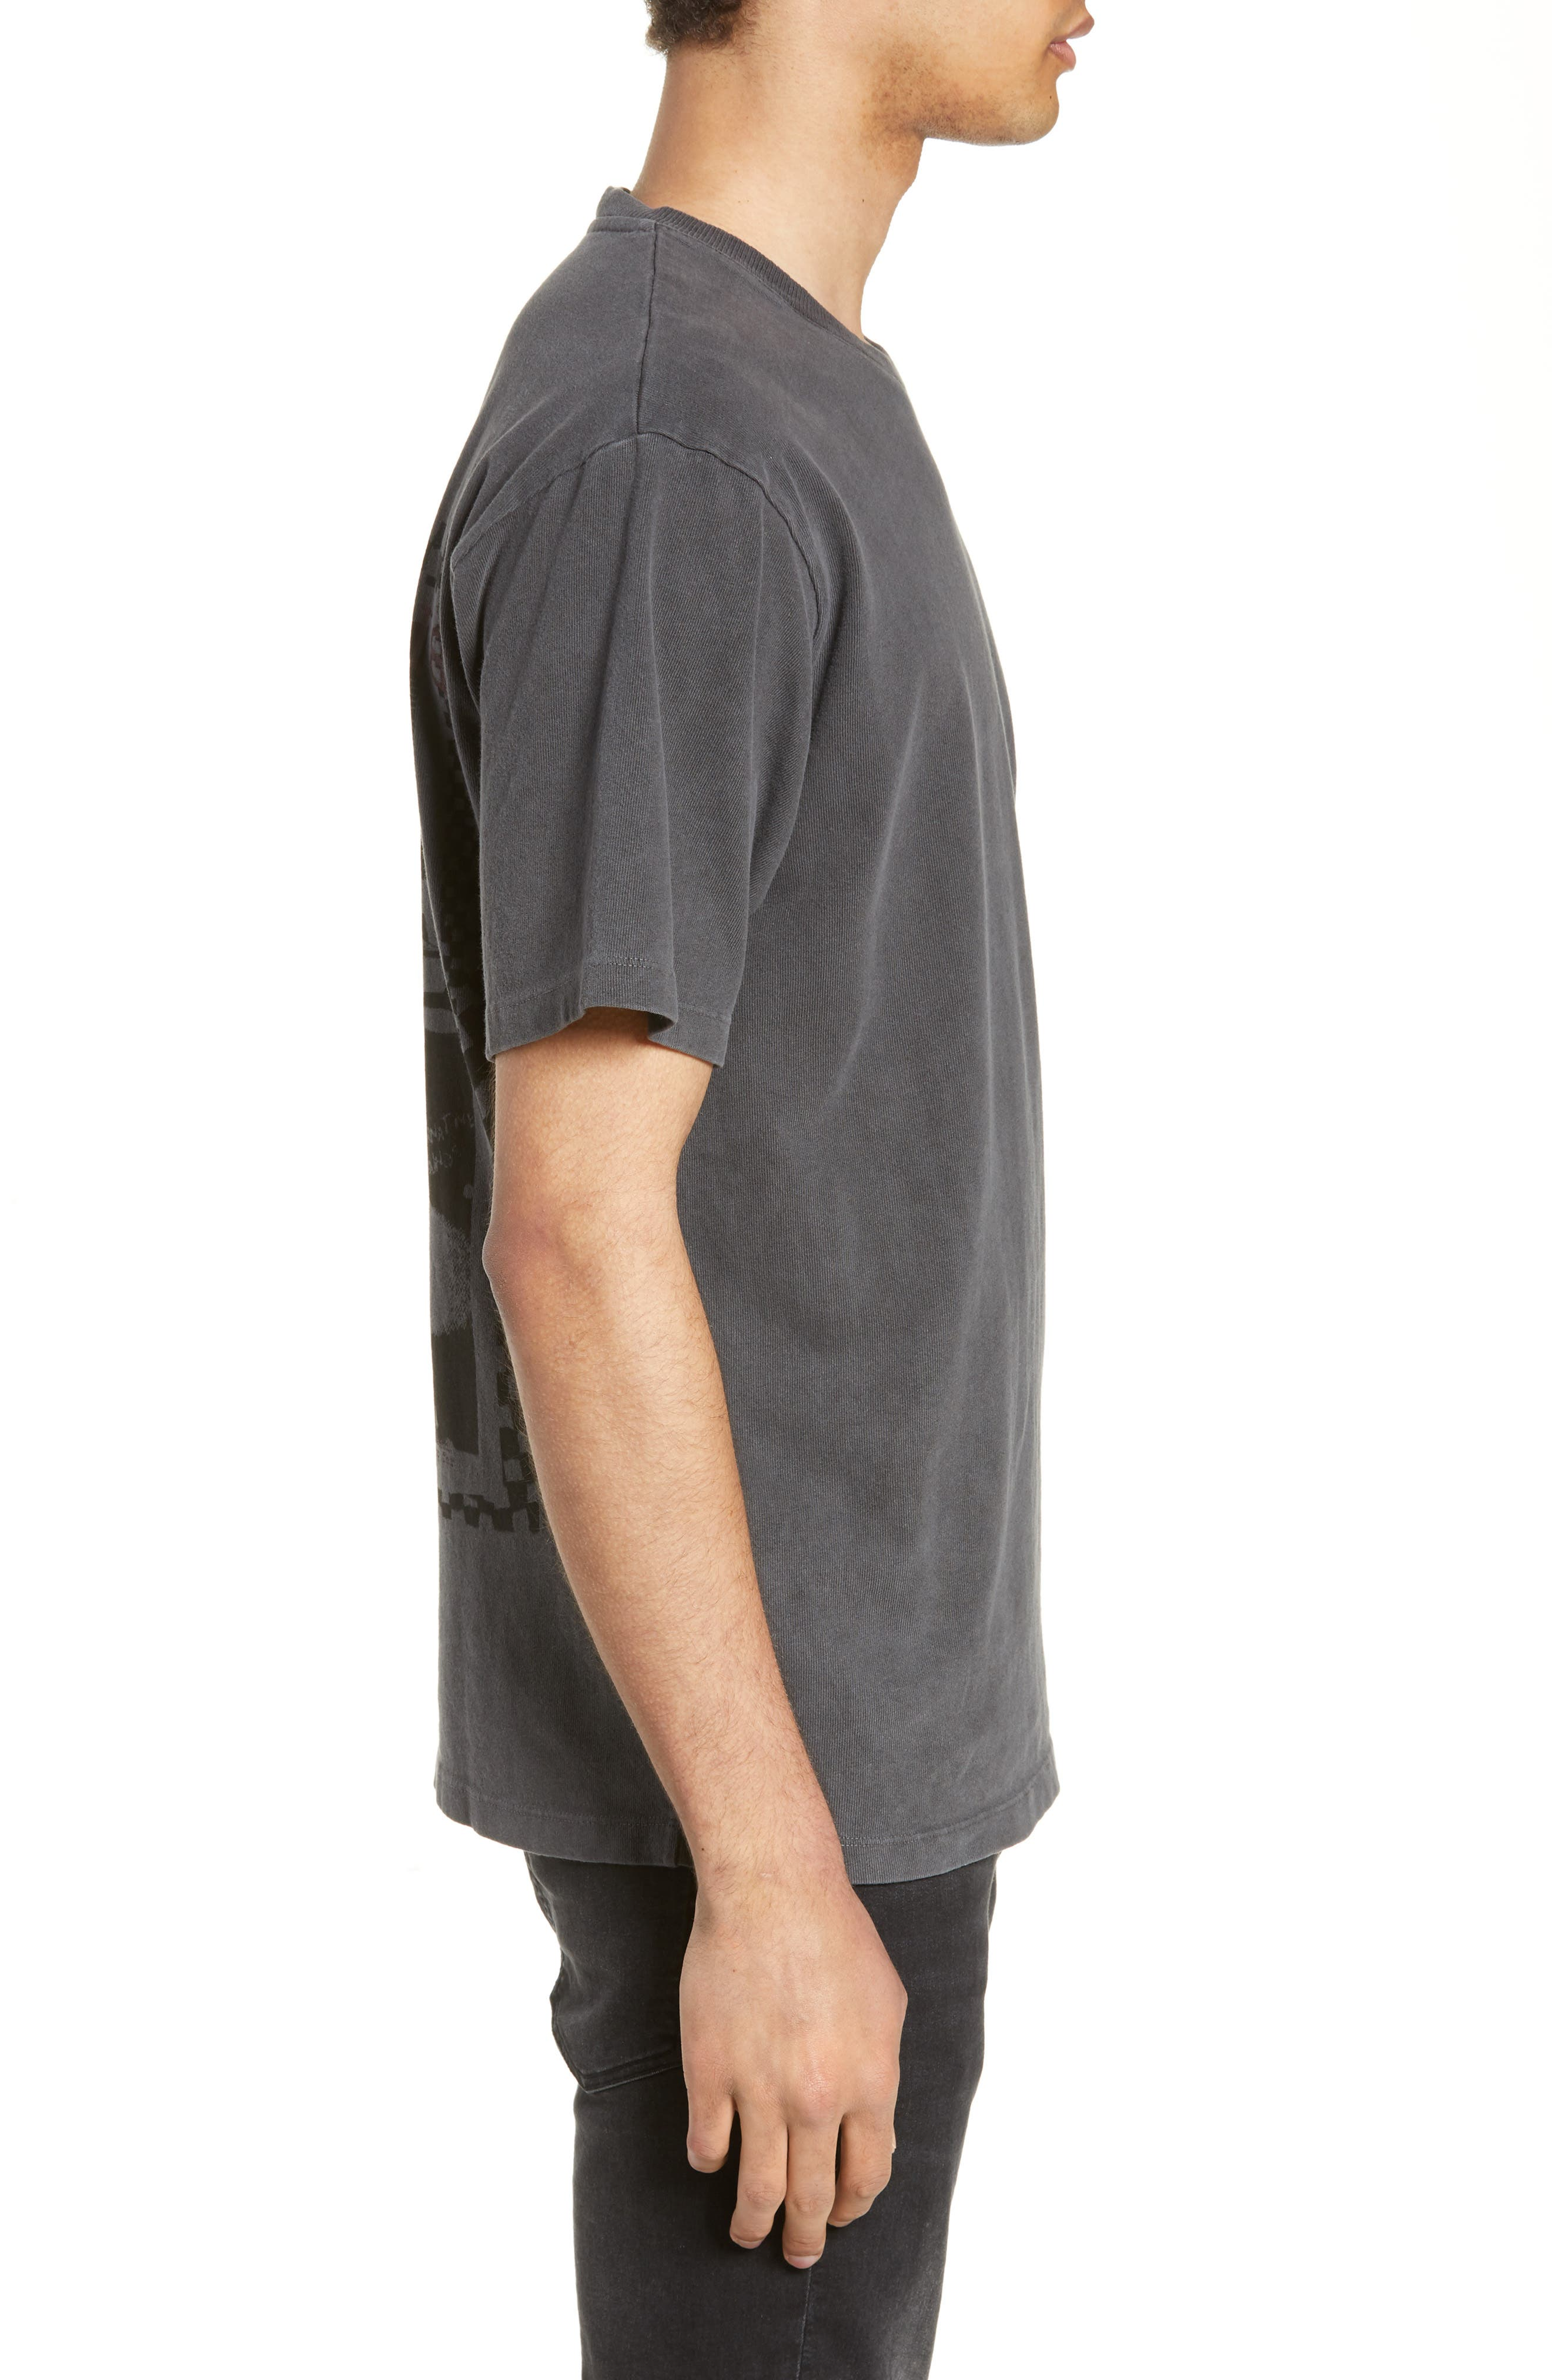 THE KOOPLES, Graphic T-Shirt, Alternate thumbnail 3, color, WASHED GREY